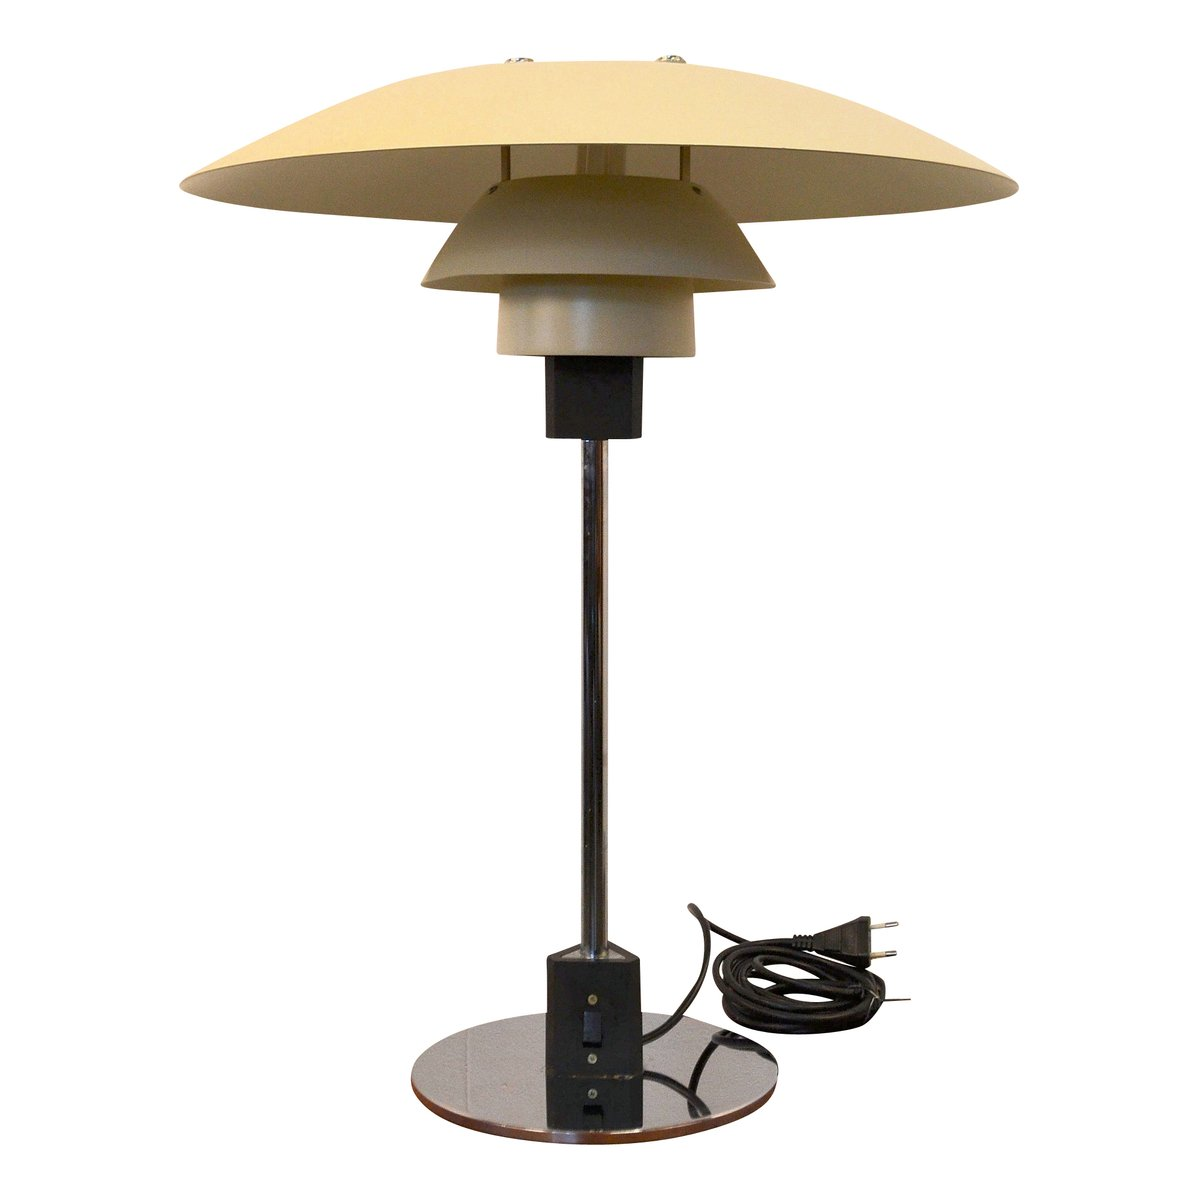 ph4 3 table lamp by poul henningsen for louis poulsen 1960s for sale at pamono. Black Bedroom Furniture Sets. Home Design Ideas